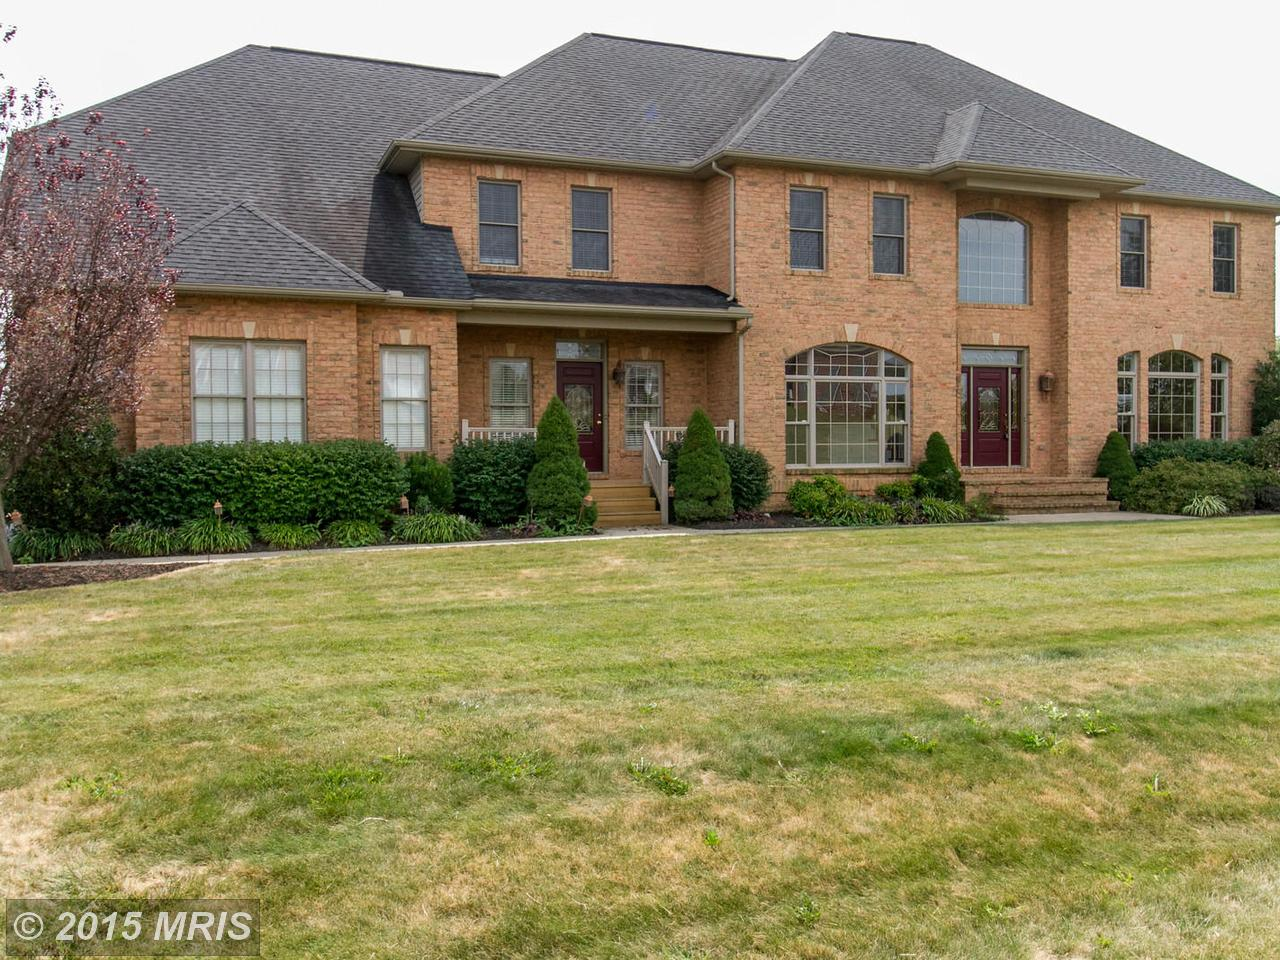 4 Bedroom Homes For Sale In HAGERSTOWN, MD